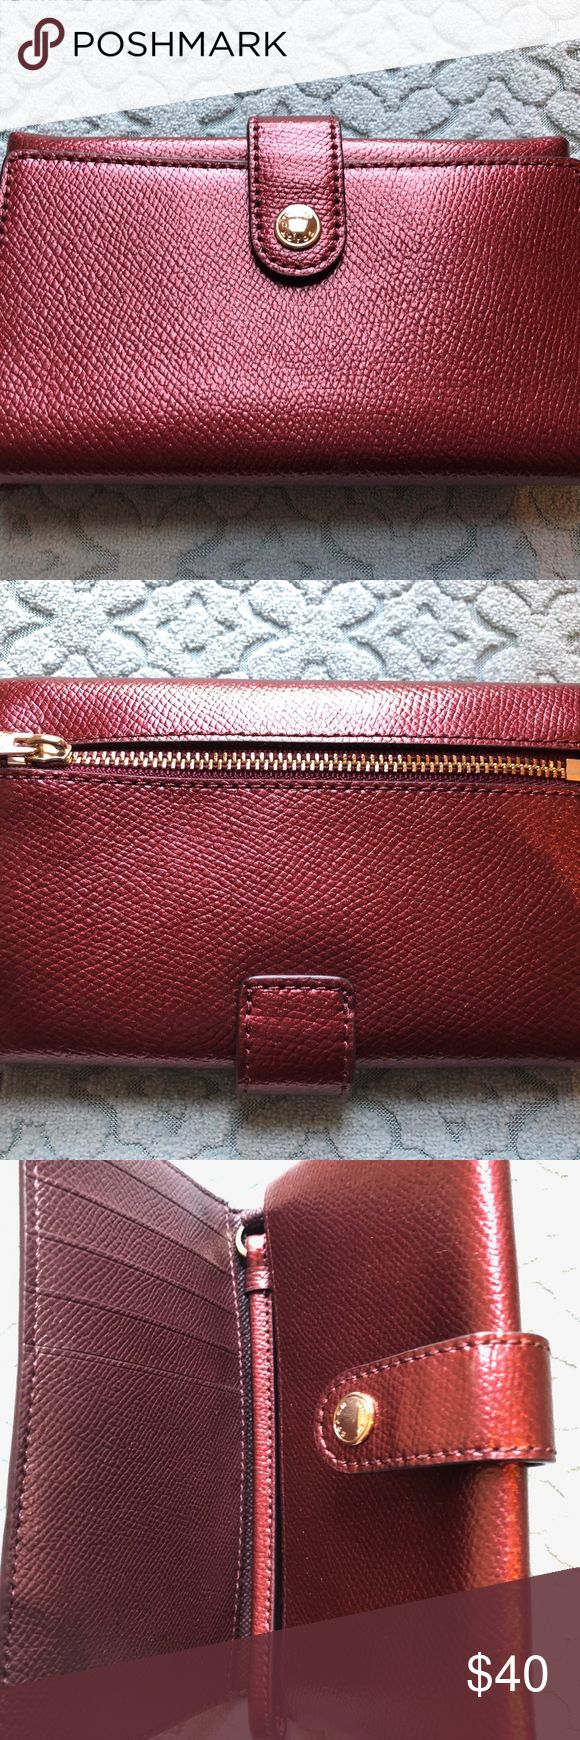 COACH RED LEATHER METALLIC WALLET/WRISTLET NWT This listing is for a cute metall…